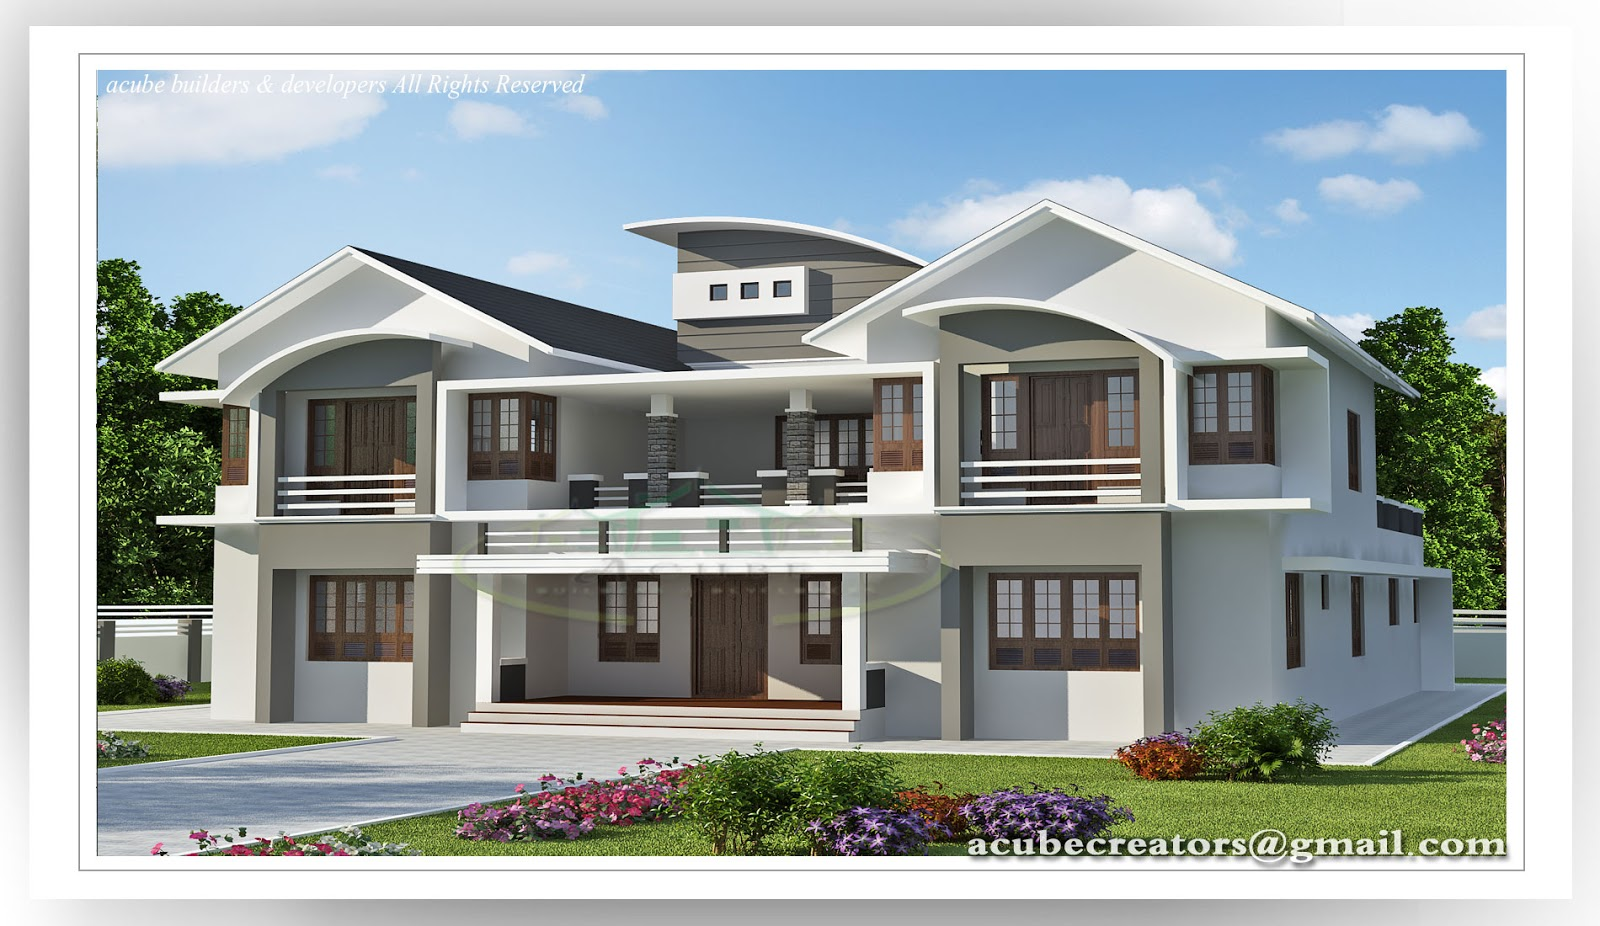 6 bedroom luxury villa design 5091 plan 149 Six bedroom house plans